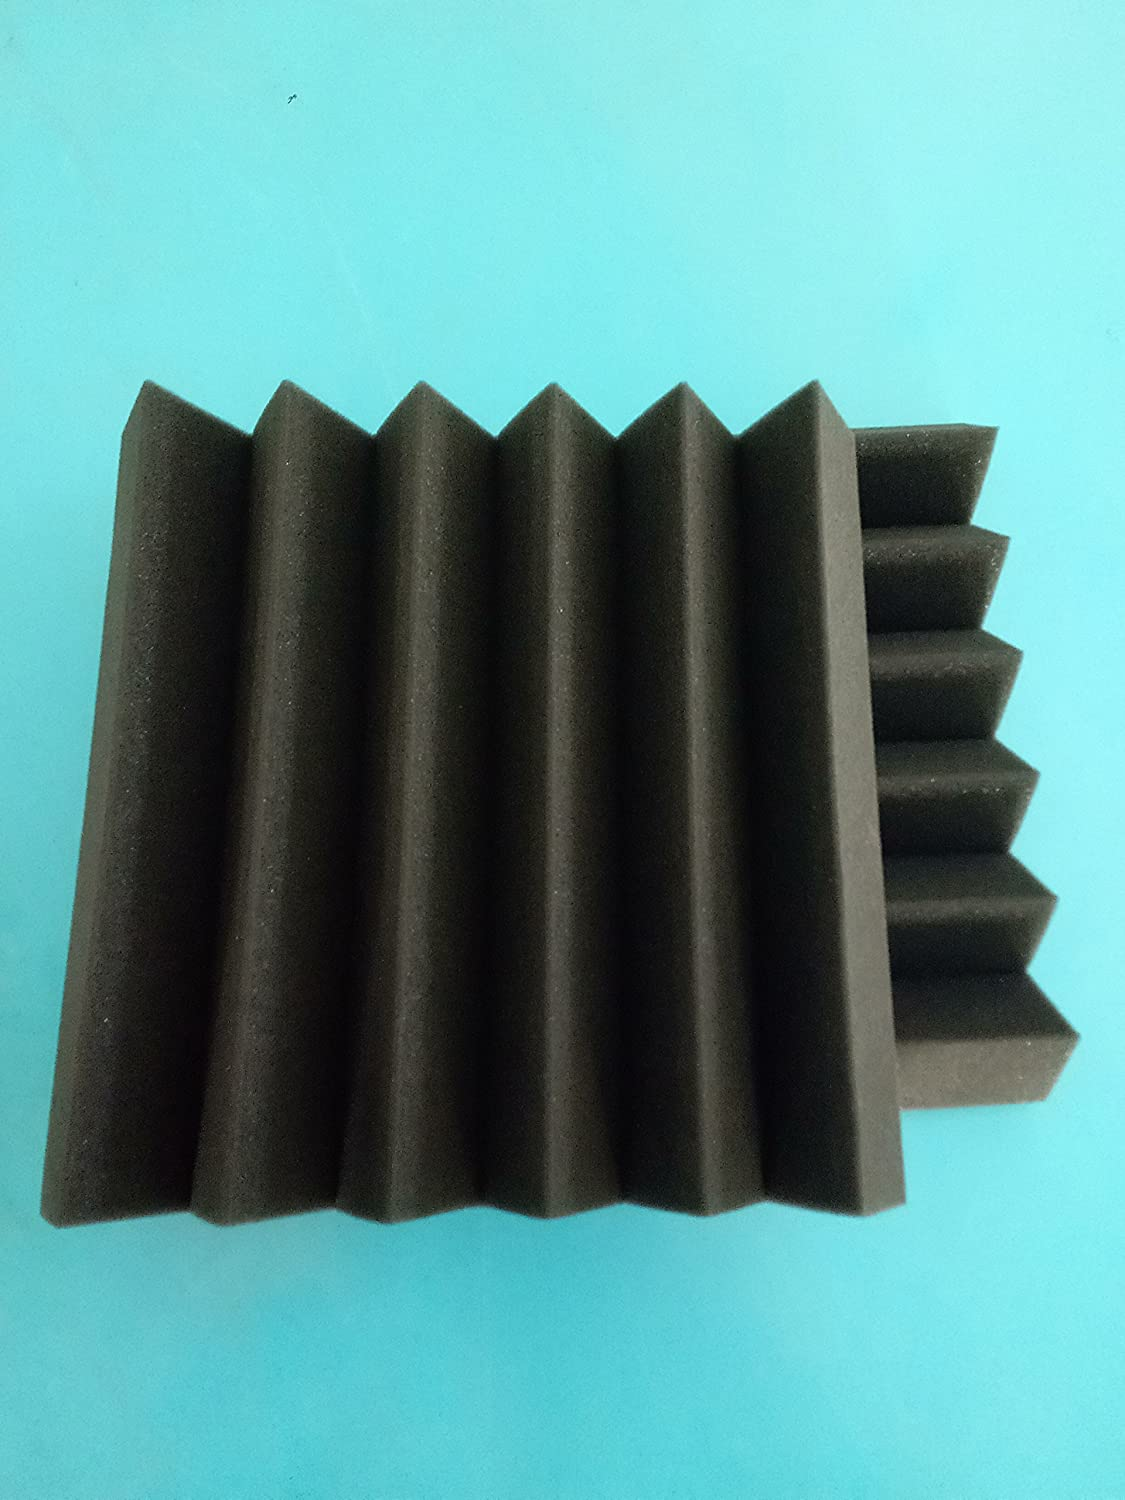 "12 Pack - Acoustic Panels Studio Soundproofing Foam Wedge tiles 2""x12""x12"" Ltd."